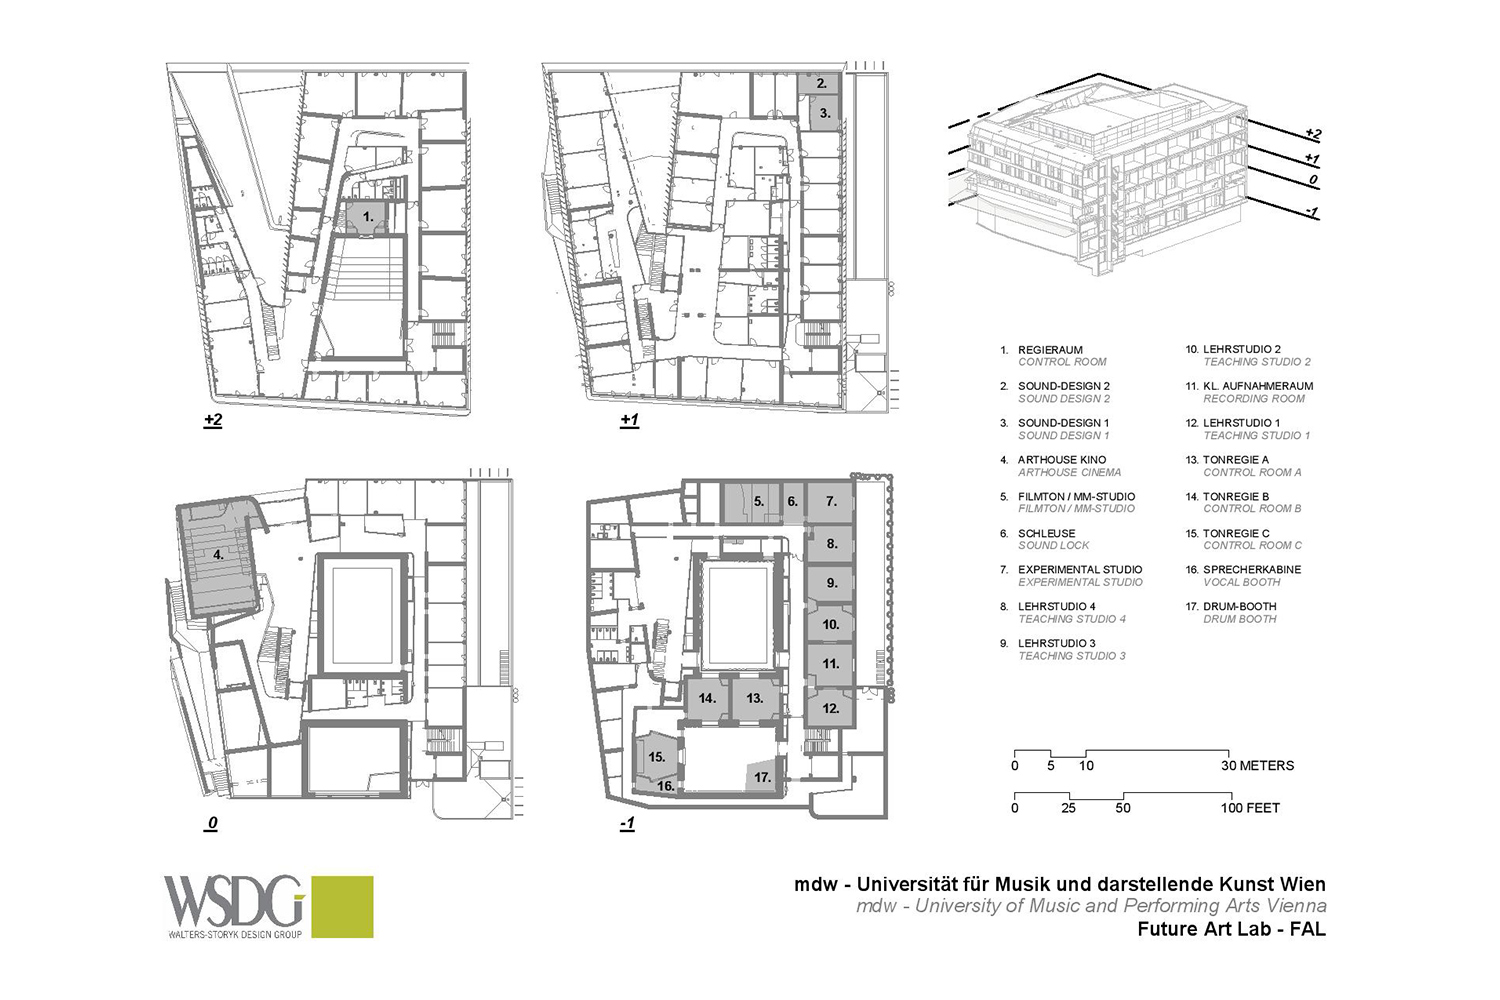 The University of Music and Performing Arts of Vienna new Future Art Lab designed by WSDG. Presentation drawing 1.